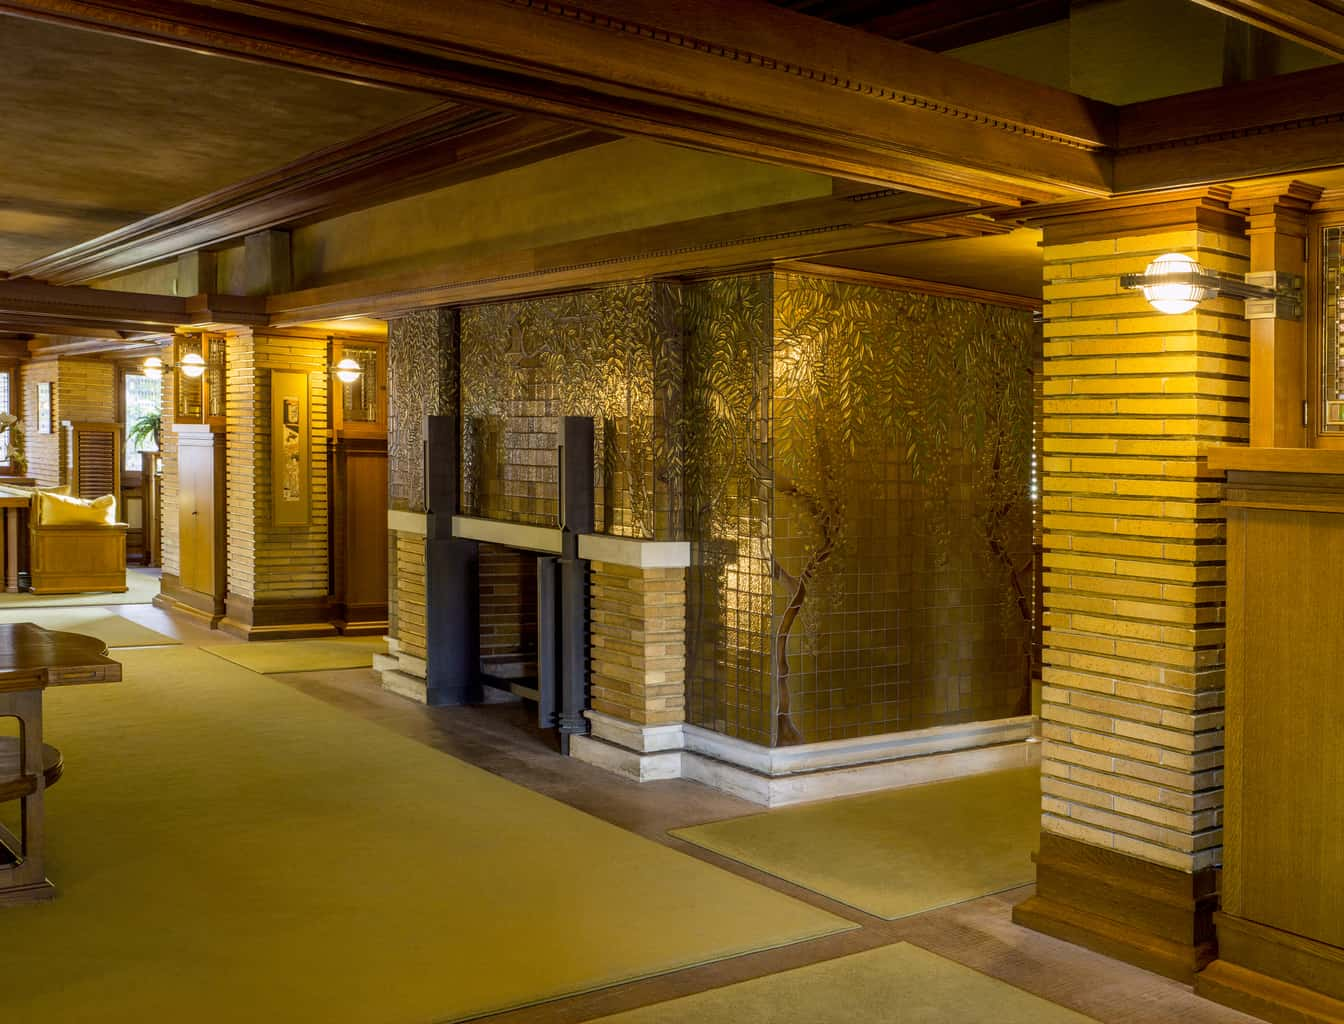 Frank Lloyd Wright's Martin House fireplace